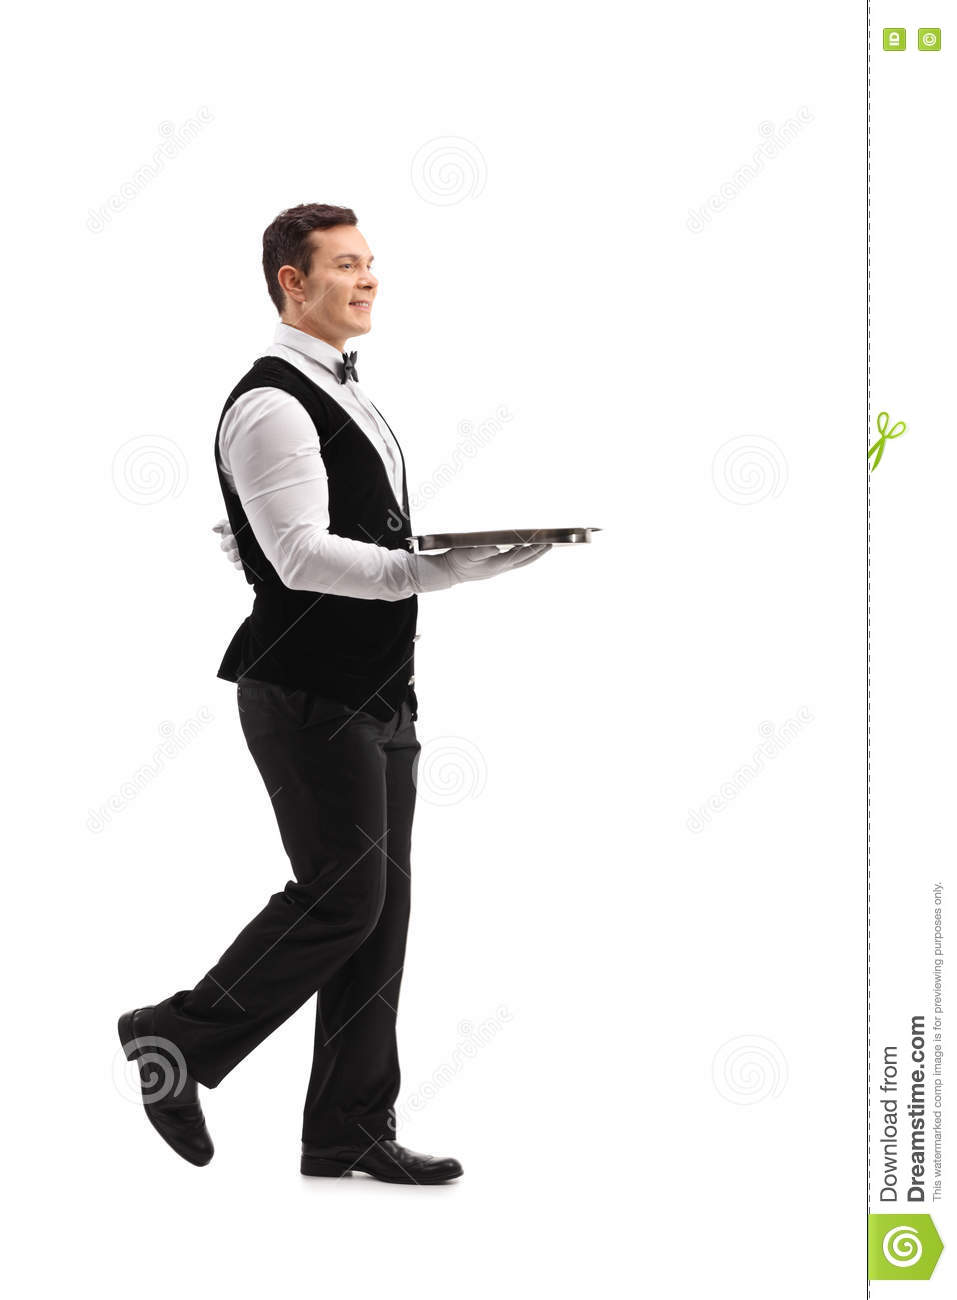 Young waiter walking with an empty tray